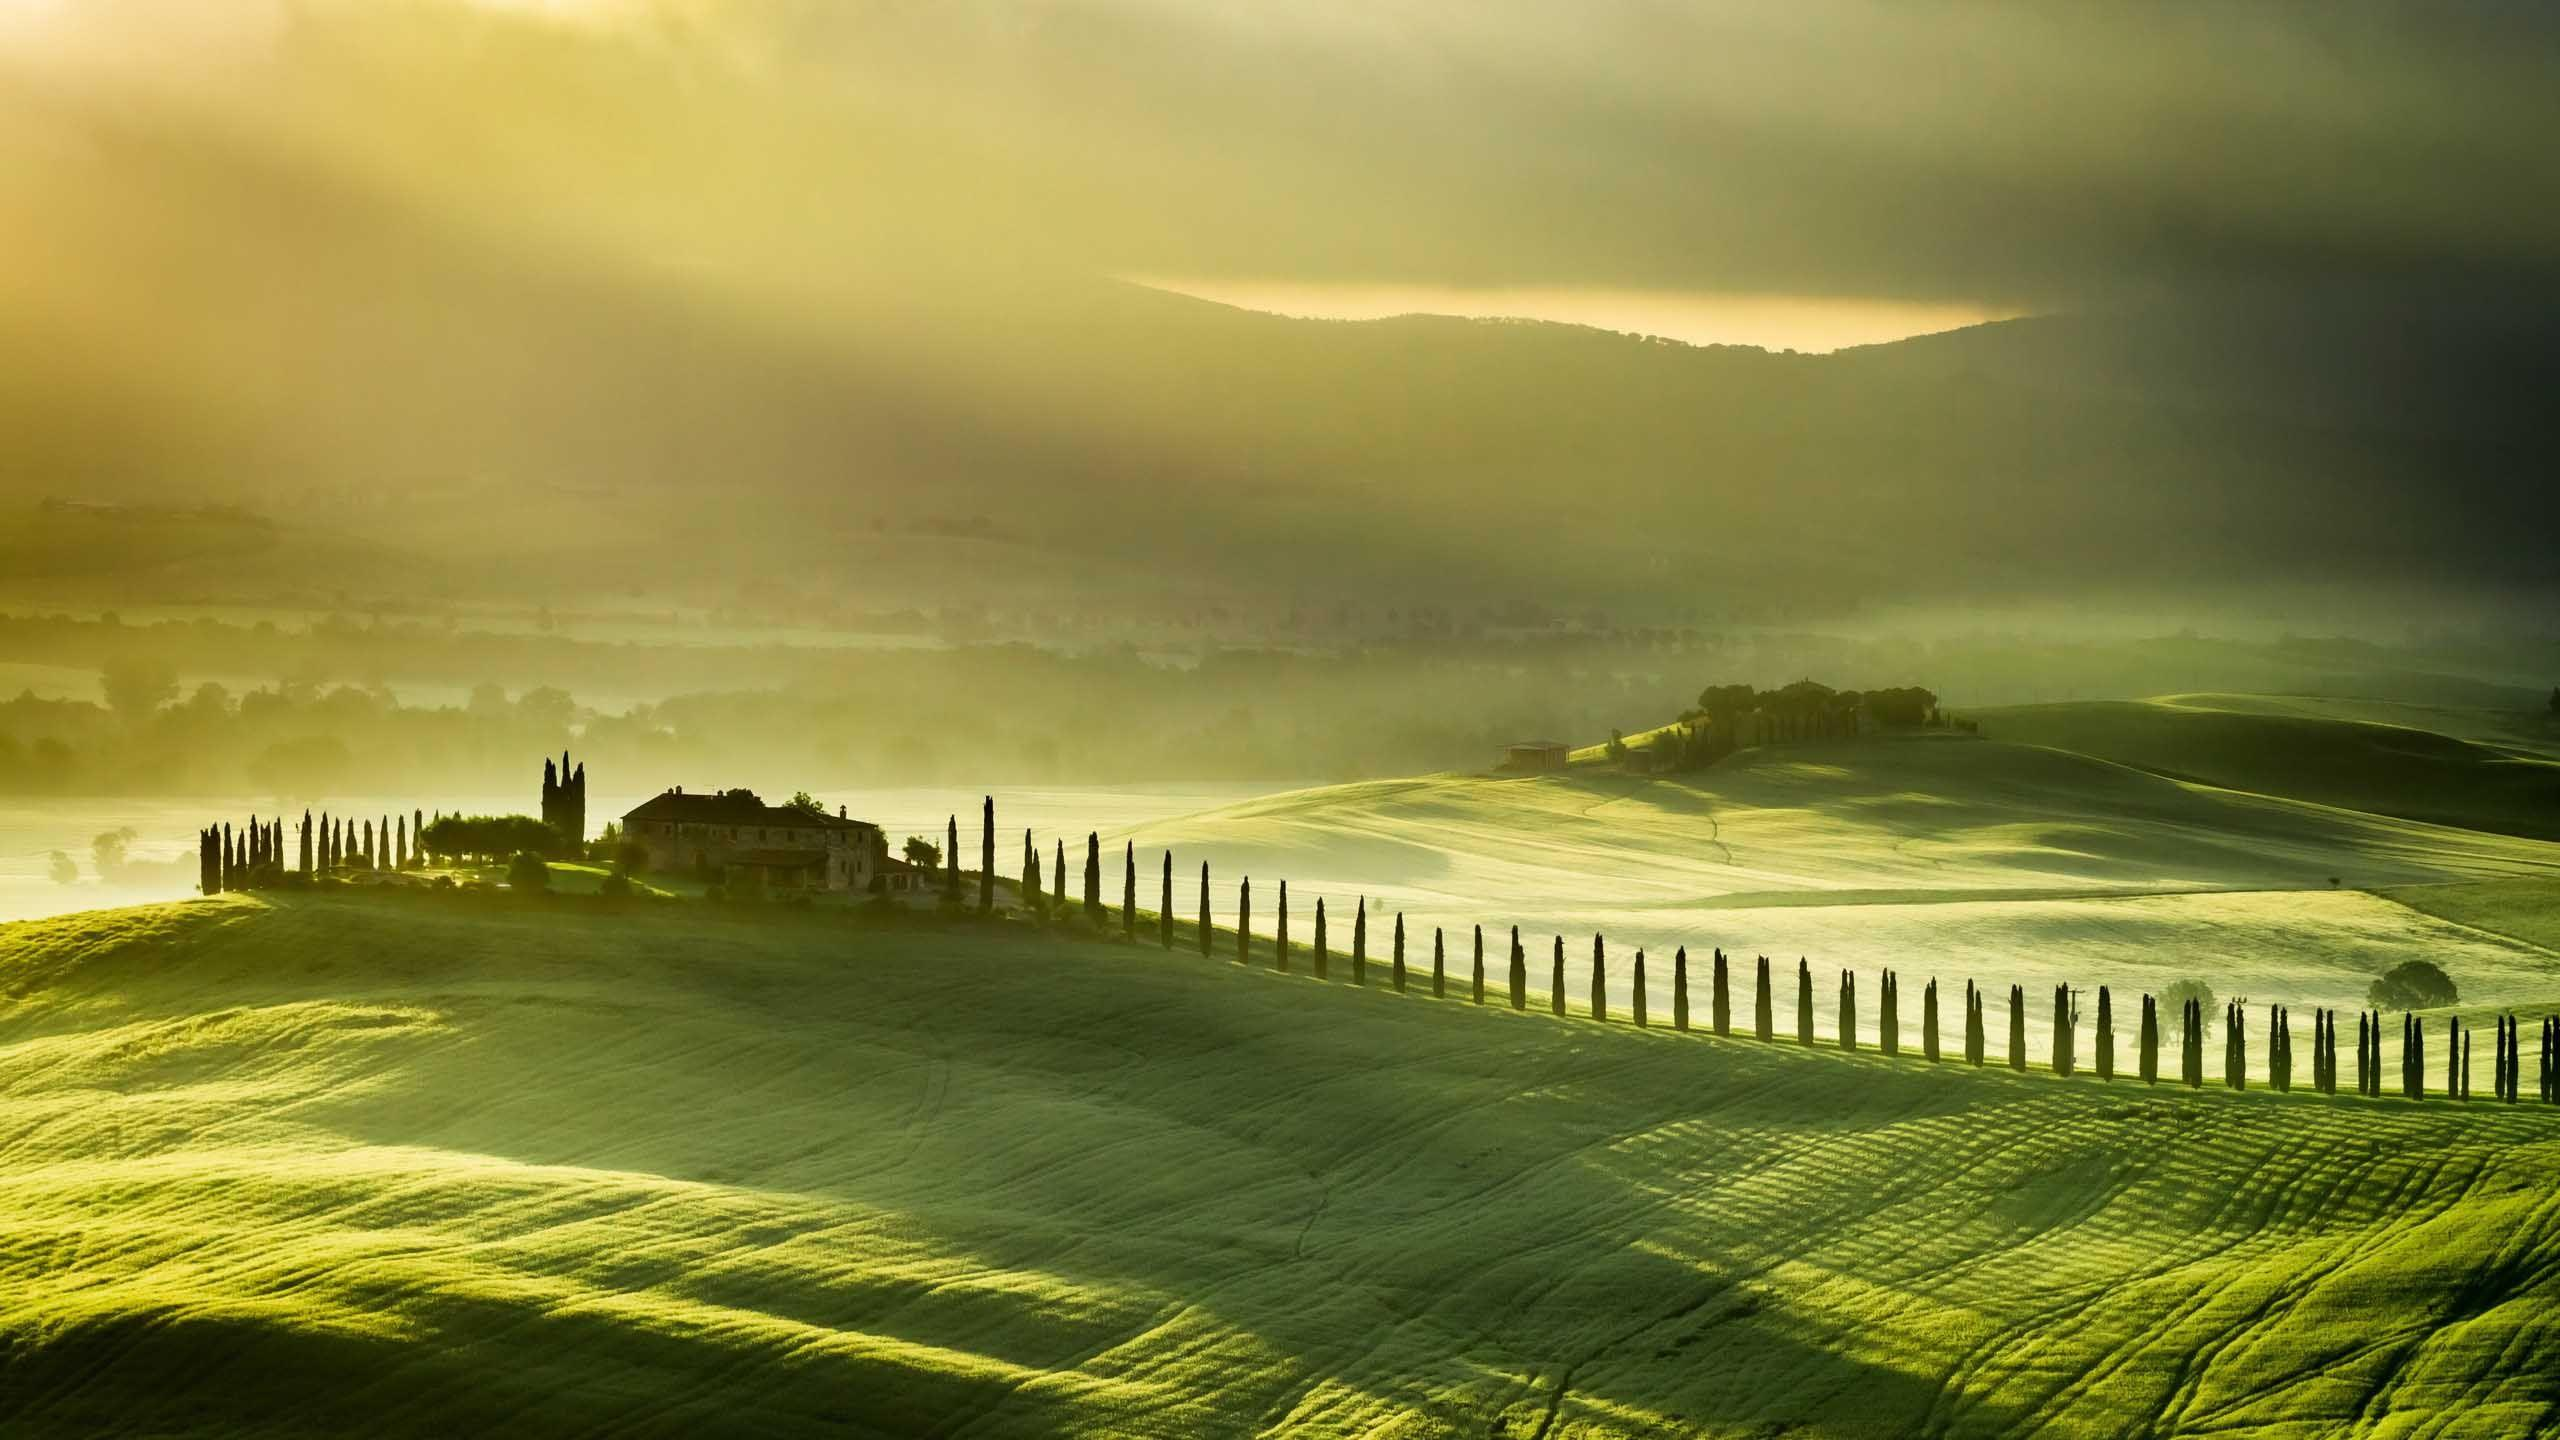 Landscape Tuscany Italy Green Farm Landscape Hills Background Images ...